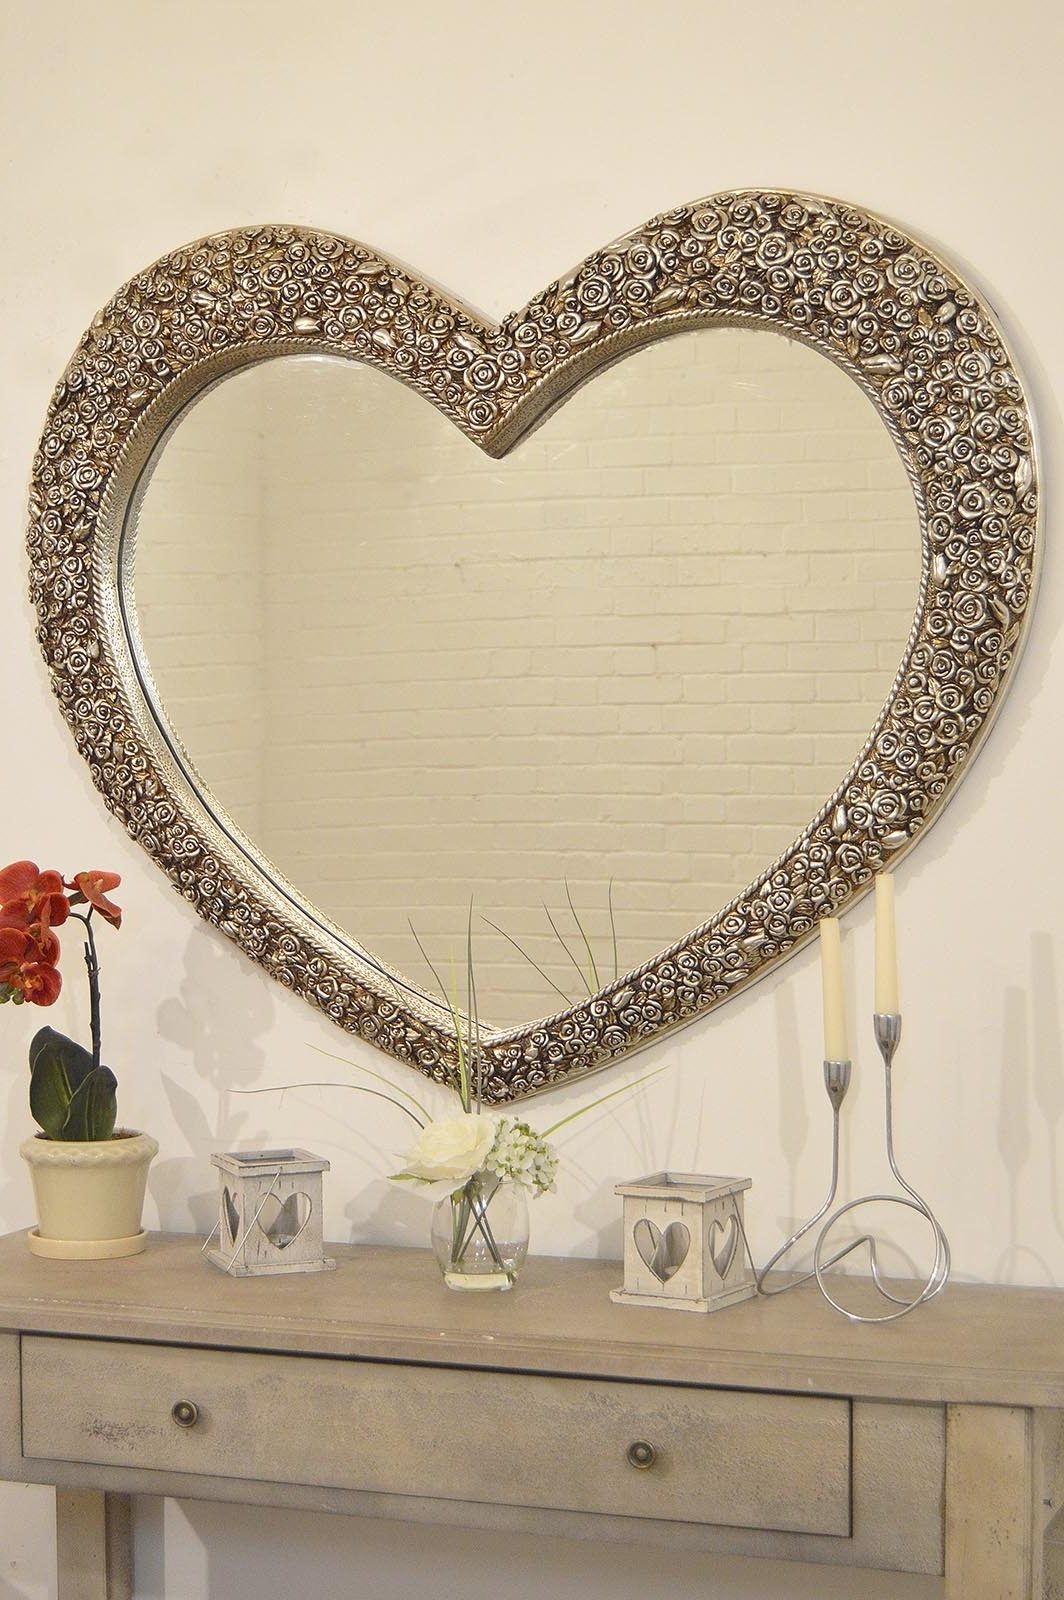 Heart Shaped Wall Mirror • Bathroom Mirrors And Wall Mirrors Regarding Most Recent Heart Wall Mirrors (View 12 of 20)